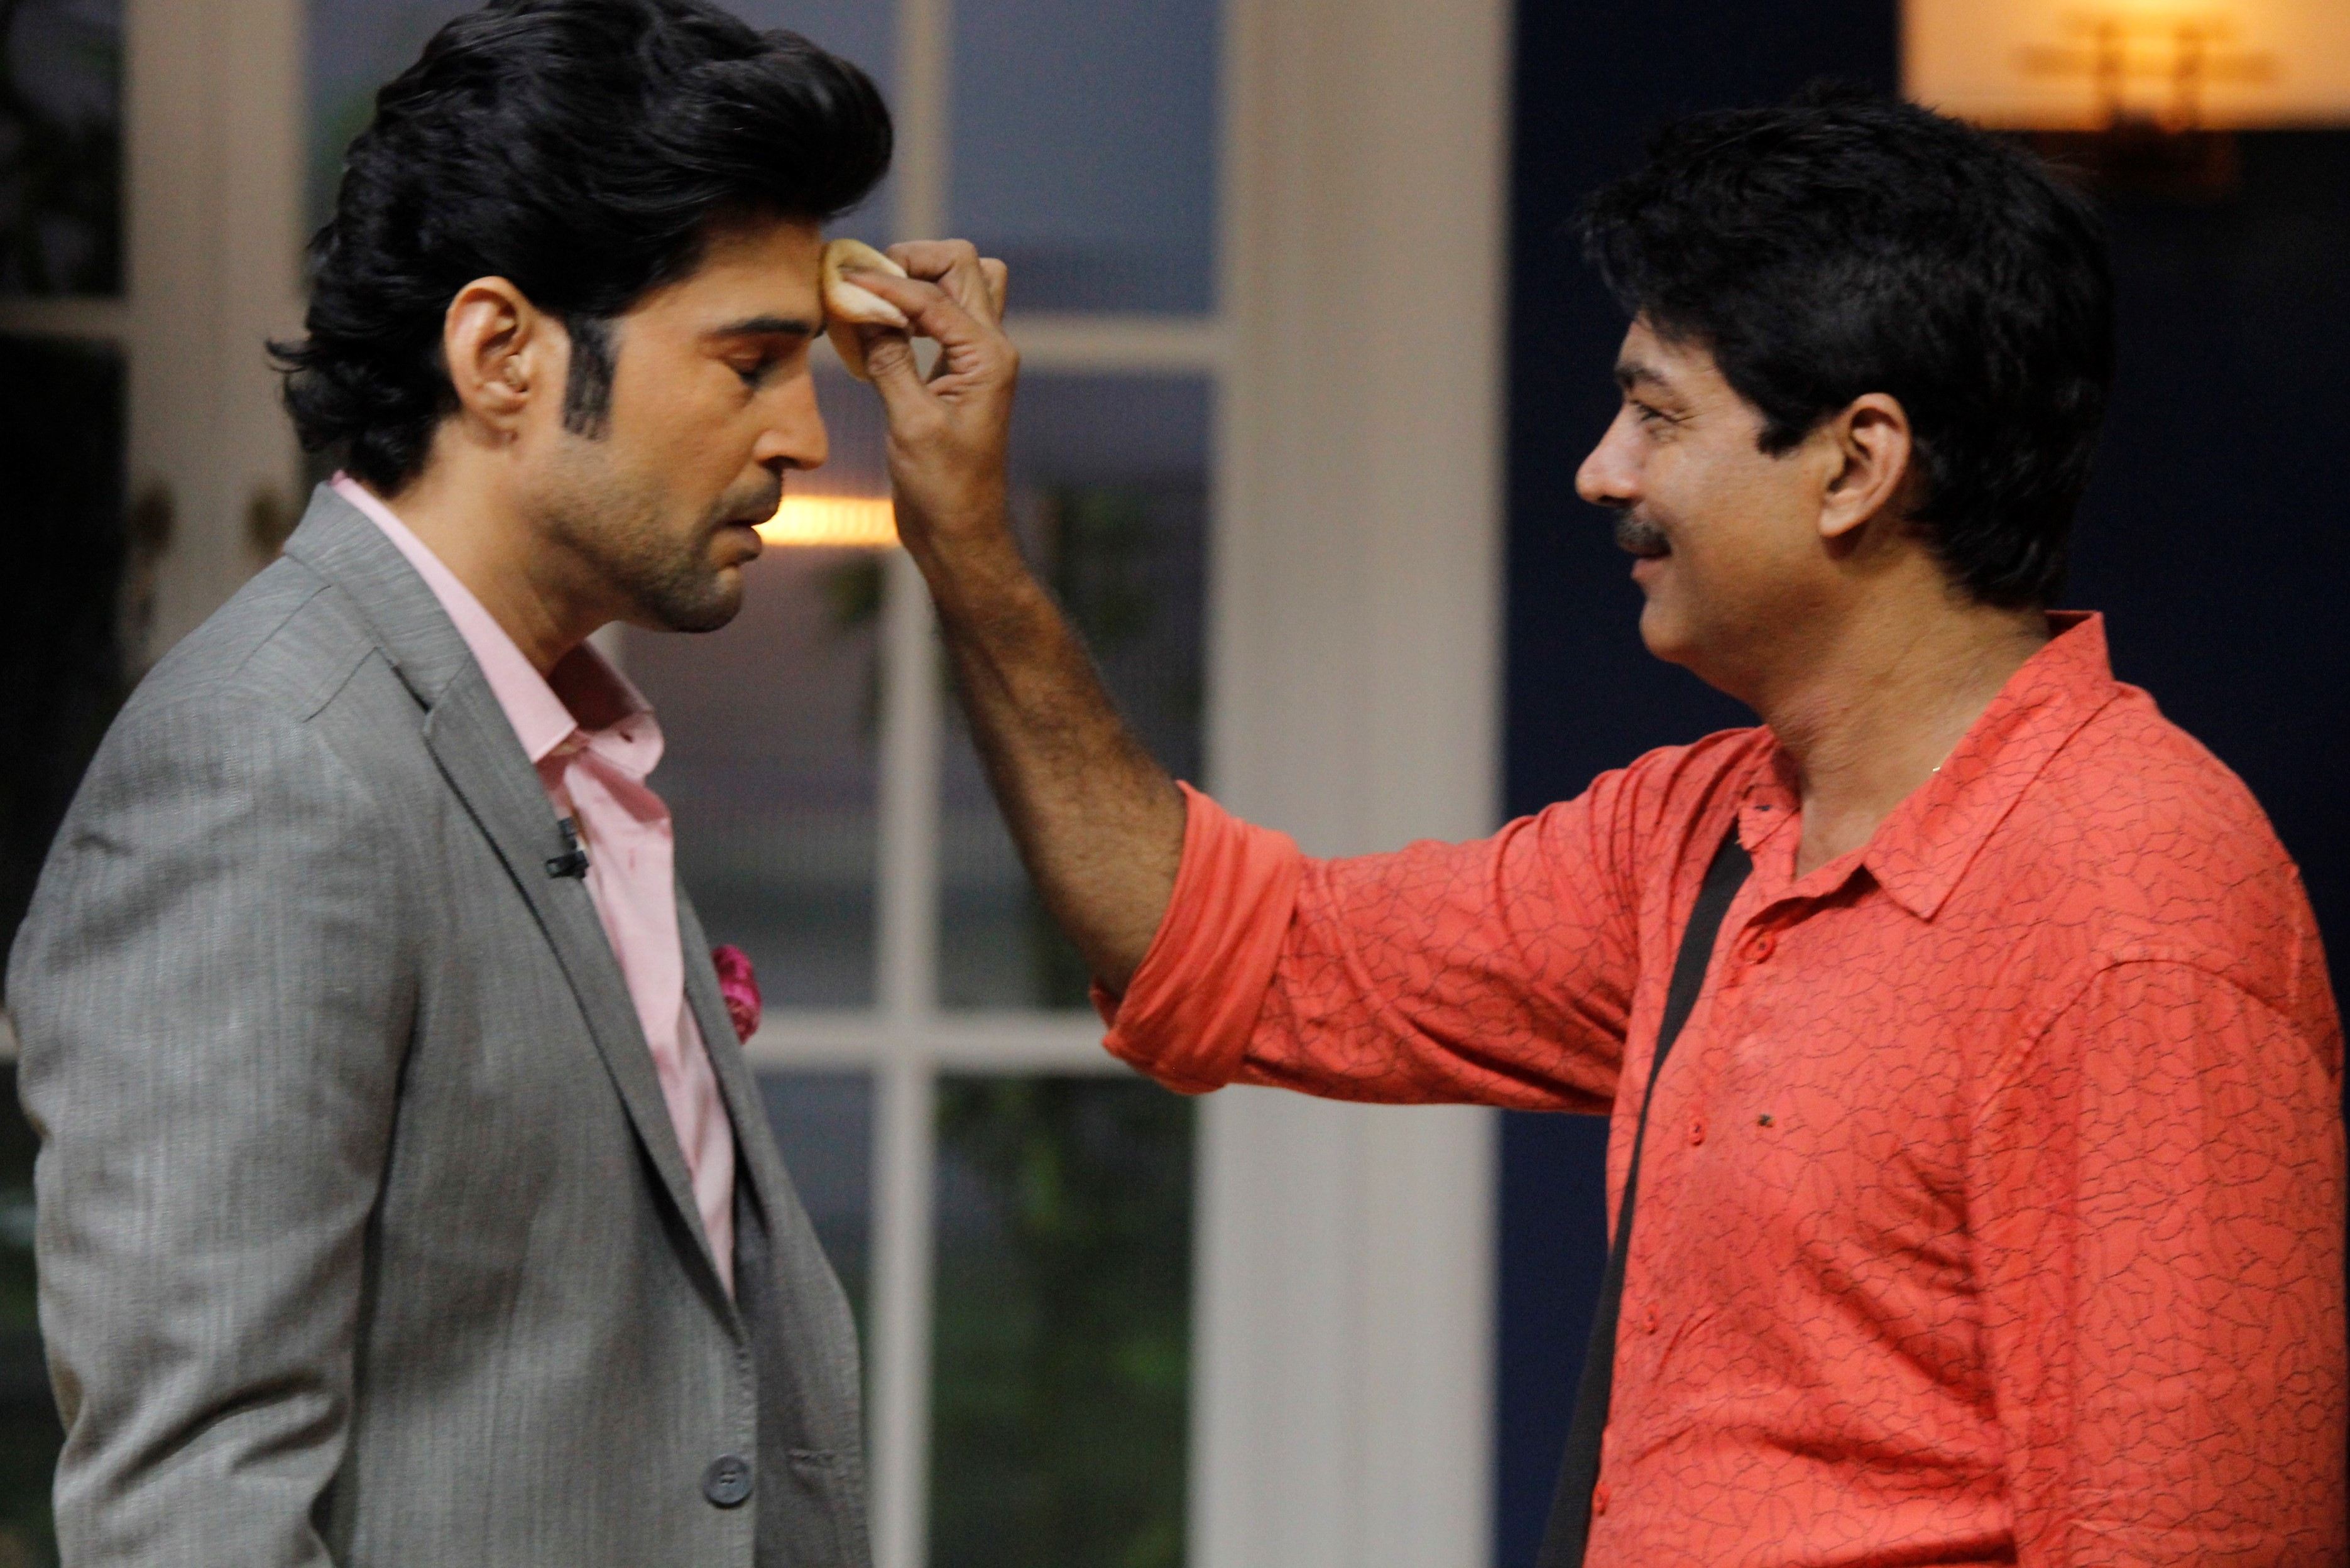 rajeev-khandelwal-on-the-sets-of-juzzbaatt-with-his-make-up-man